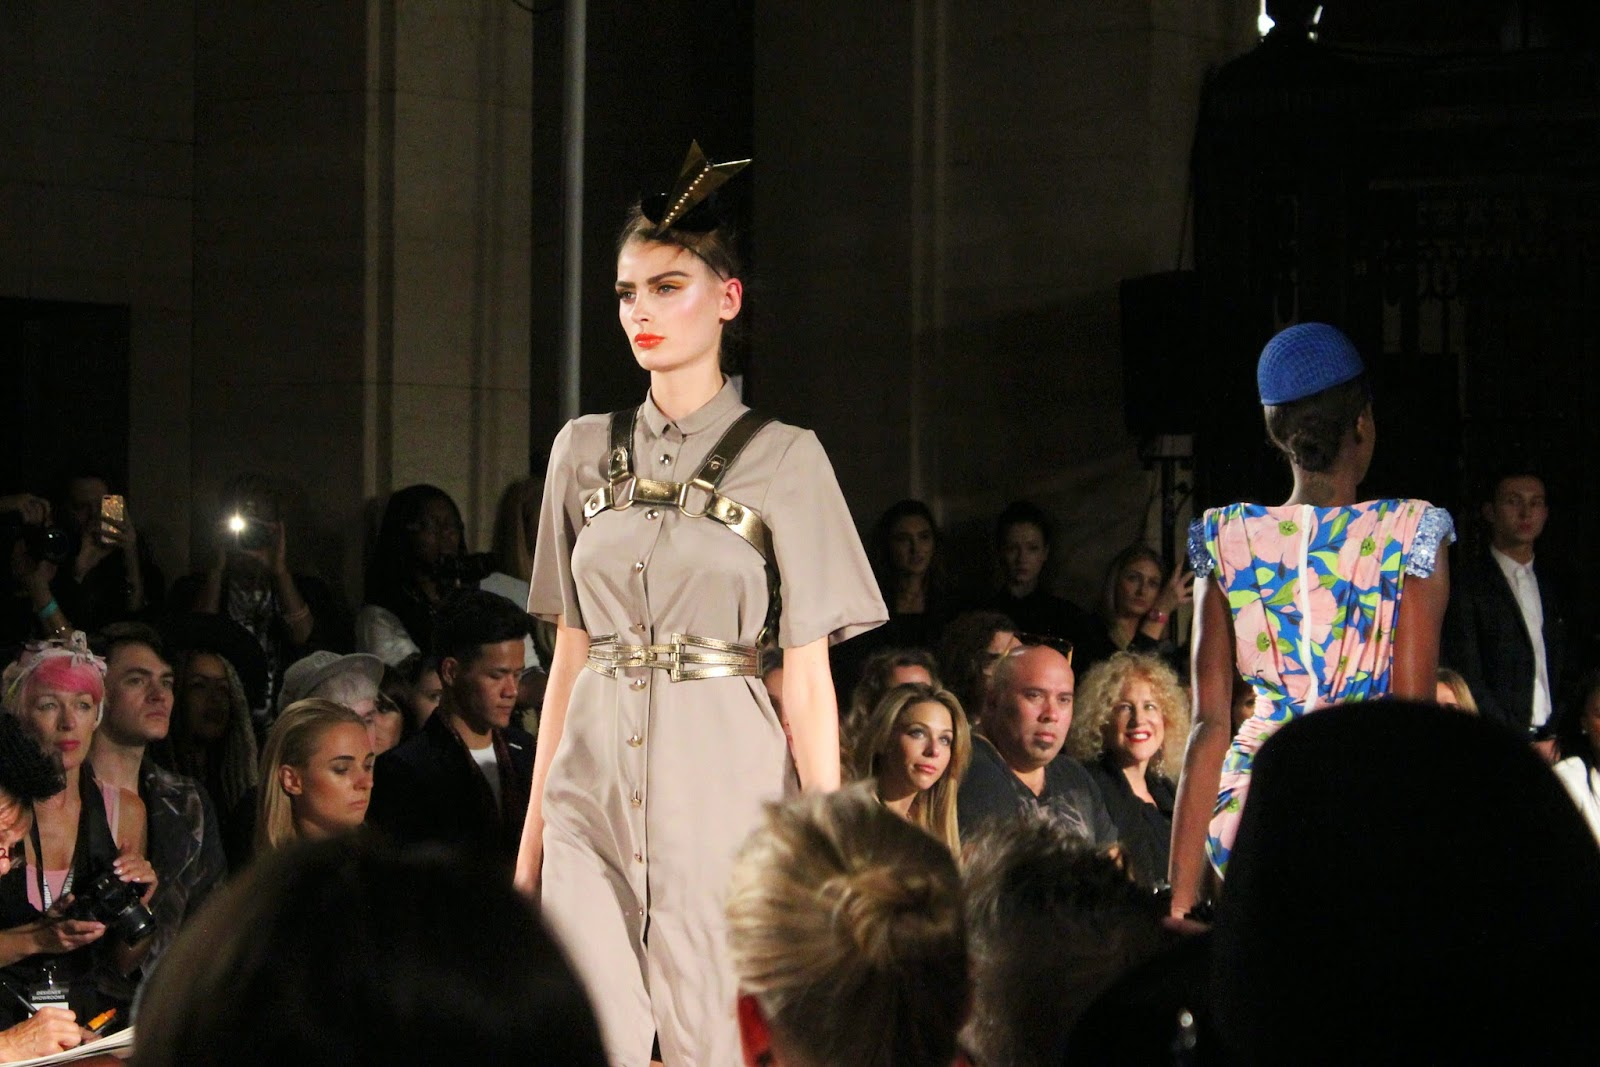 london-fashion-week-2014-lfw-spring-summer-2015-blogger-fashion-freemasons hall-fashion-scout-ashley-isham-catwalk-models-dress-swimsuit